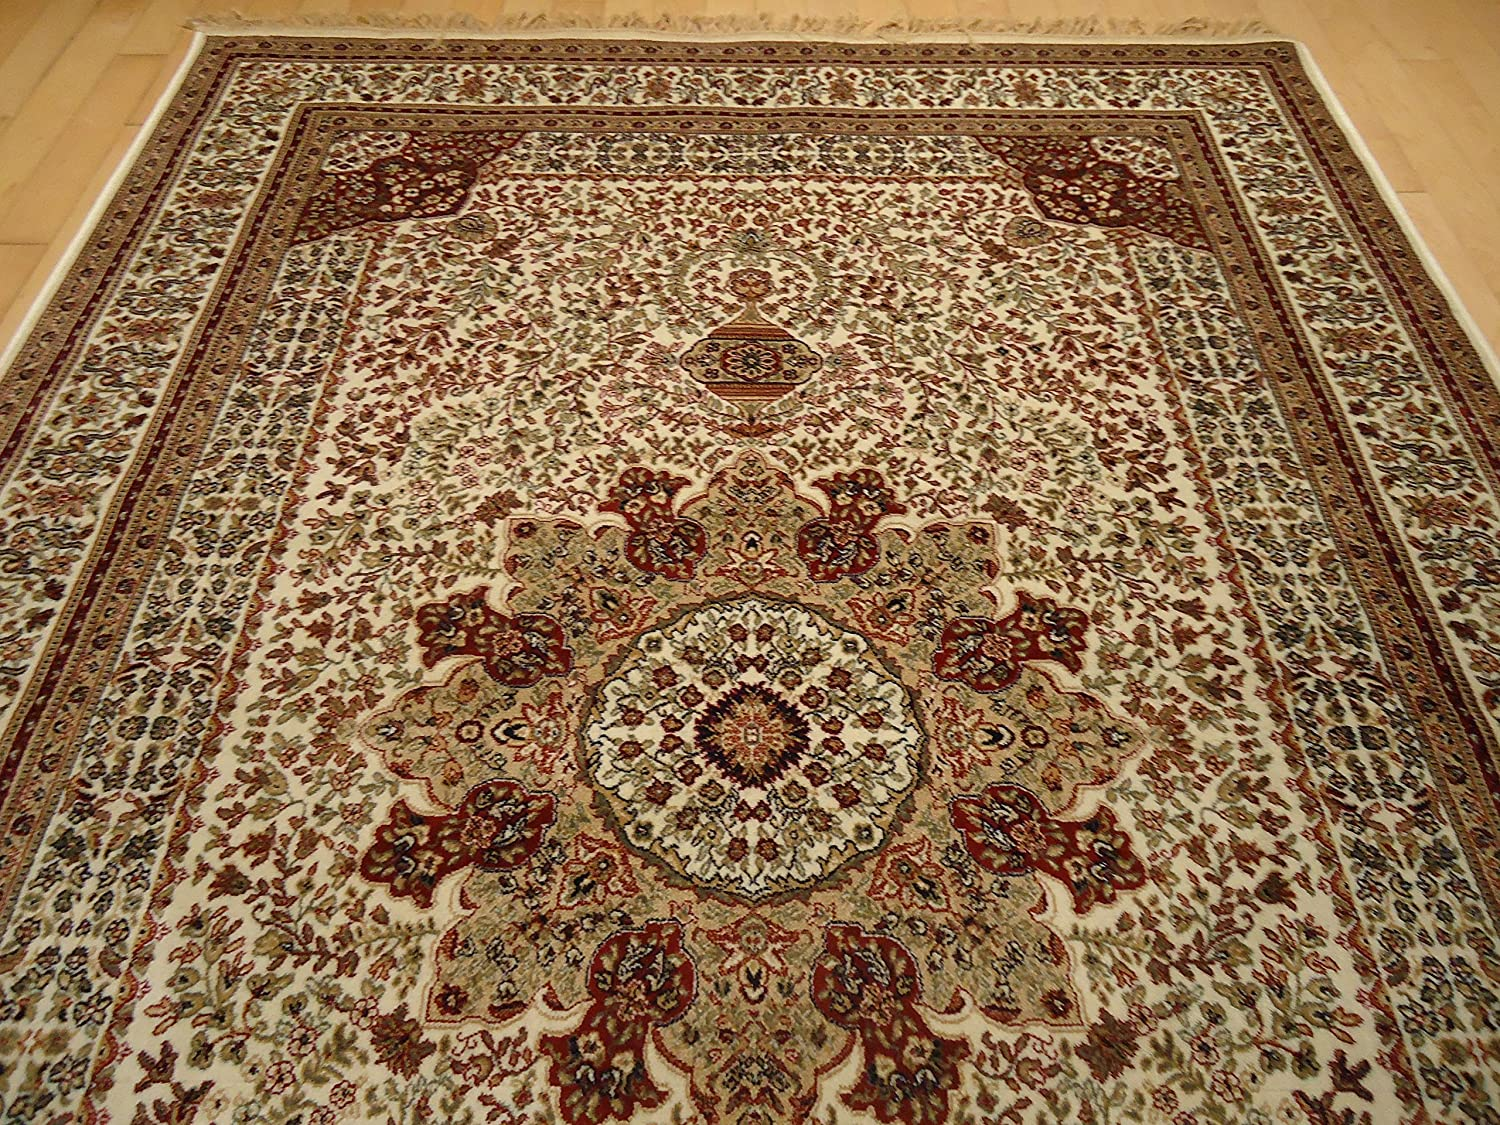 amazoncom silk ivory rug persian style tabriz rug 5x8 living room rugs 5x7 ivory cream carpet area rugs traditional luxury rugs high end silk rugs medium